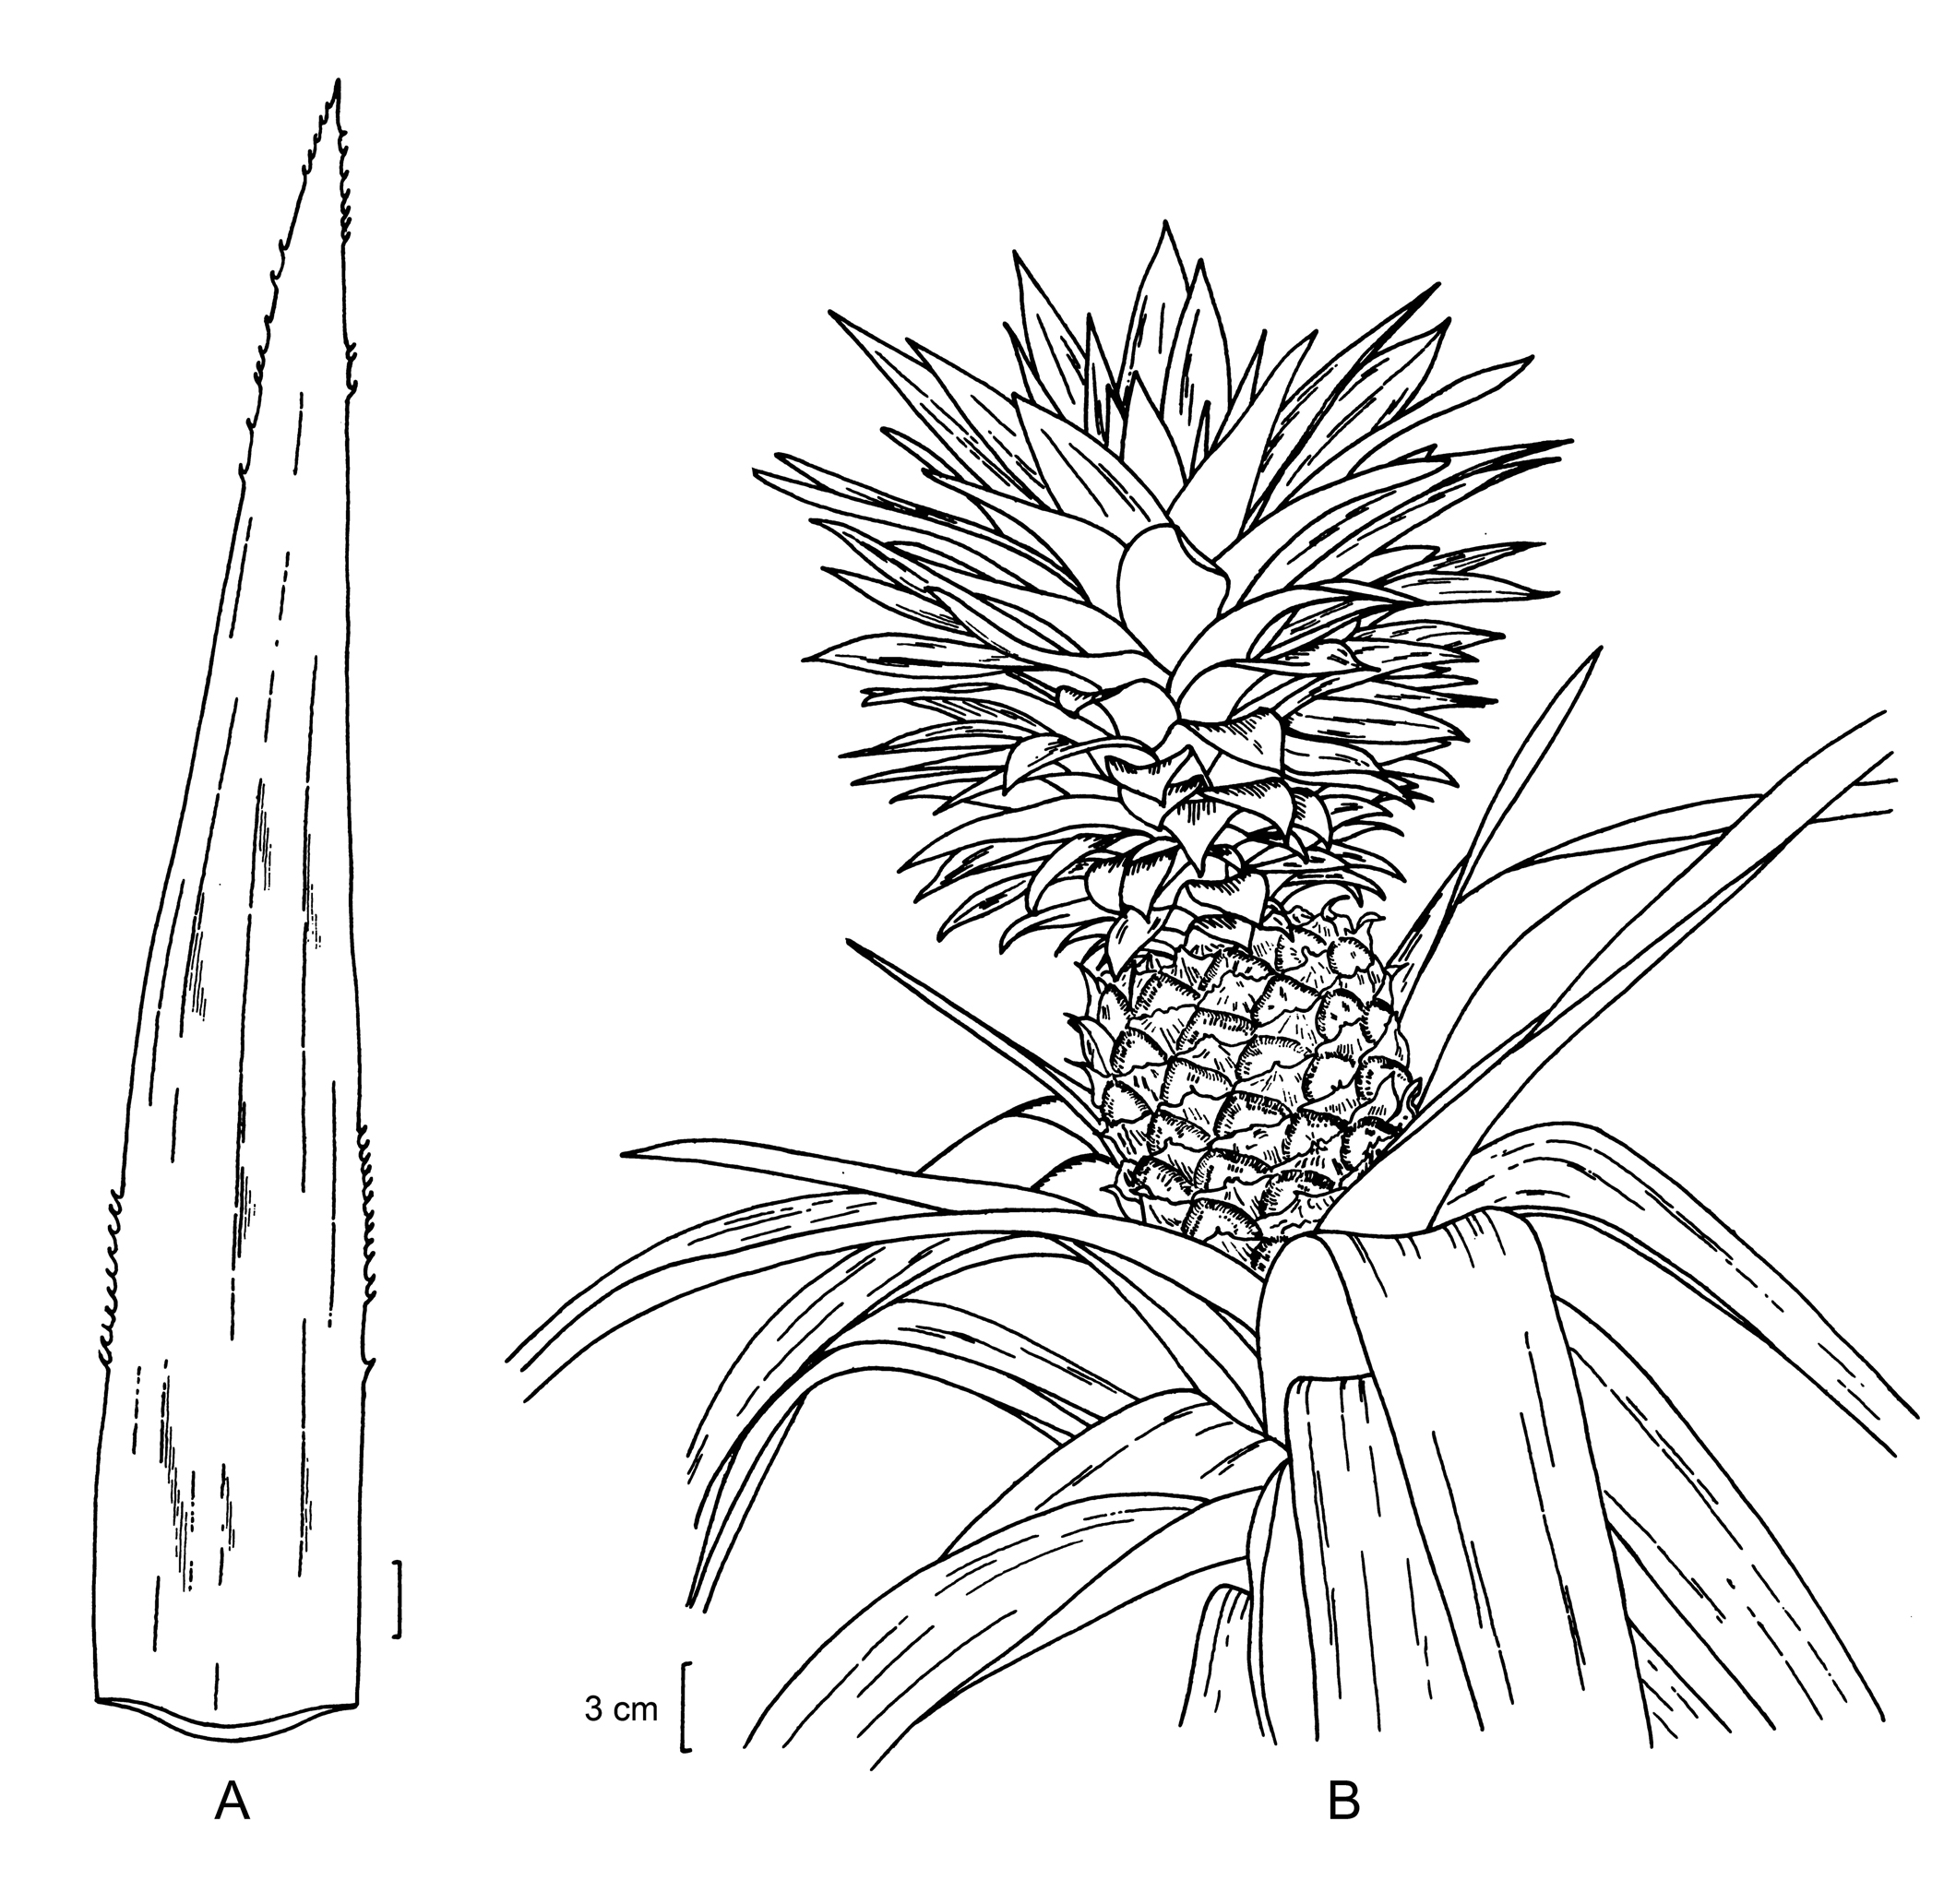 pineapple line drawing pineapple line drawing at getdrawings free download line pineapple drawing